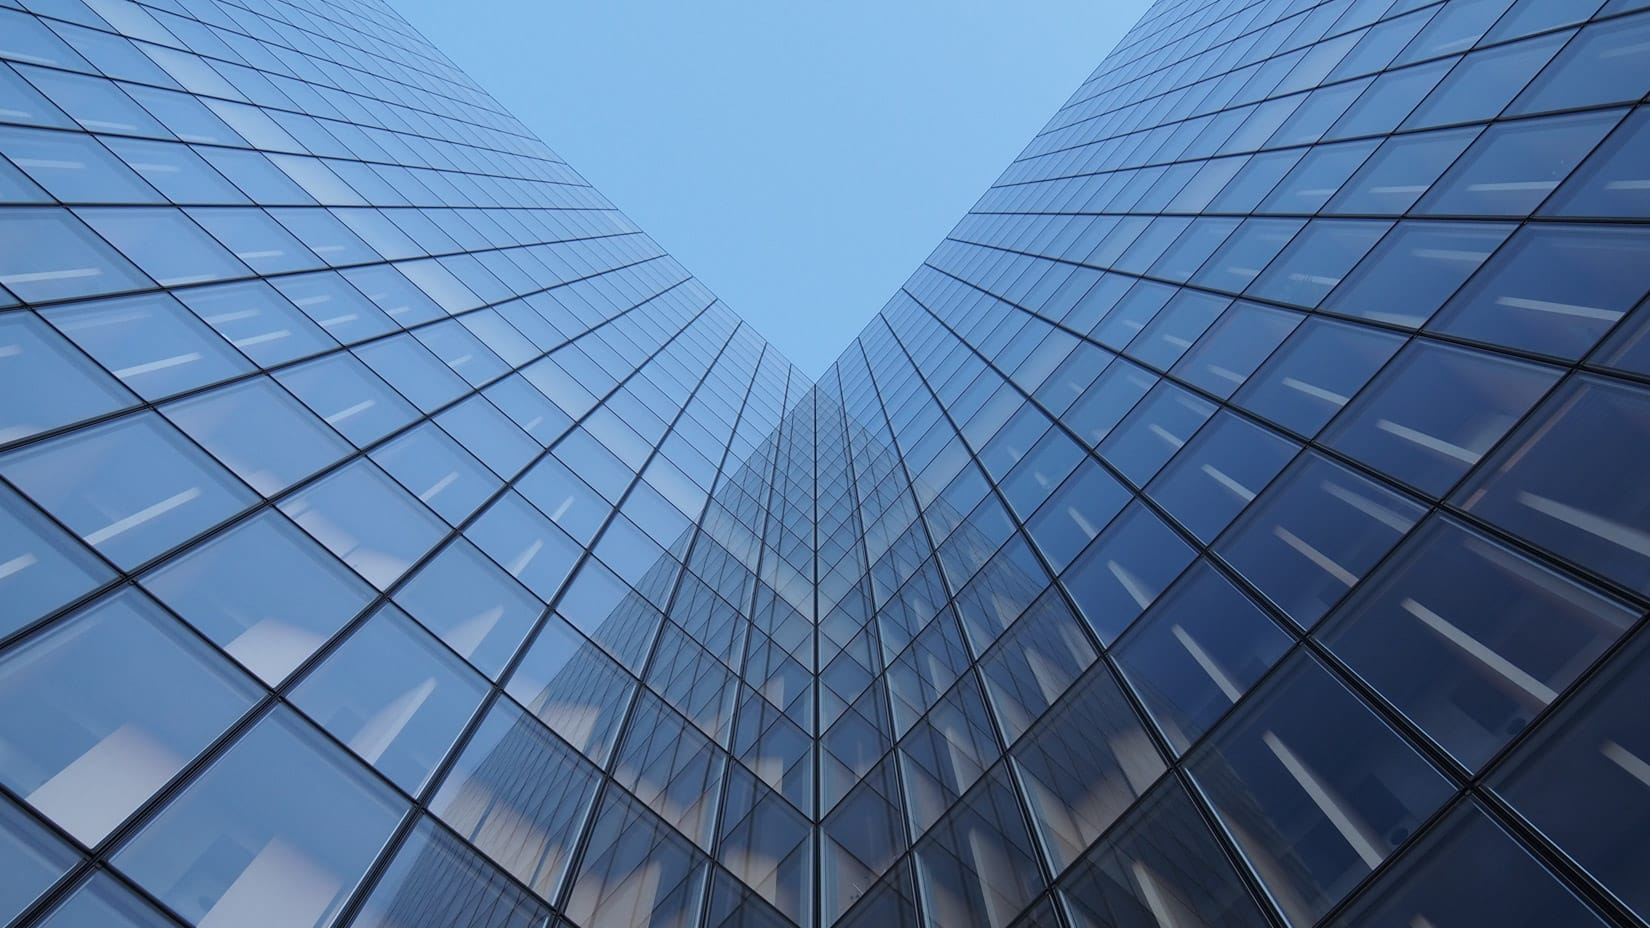 looking up at a glass building